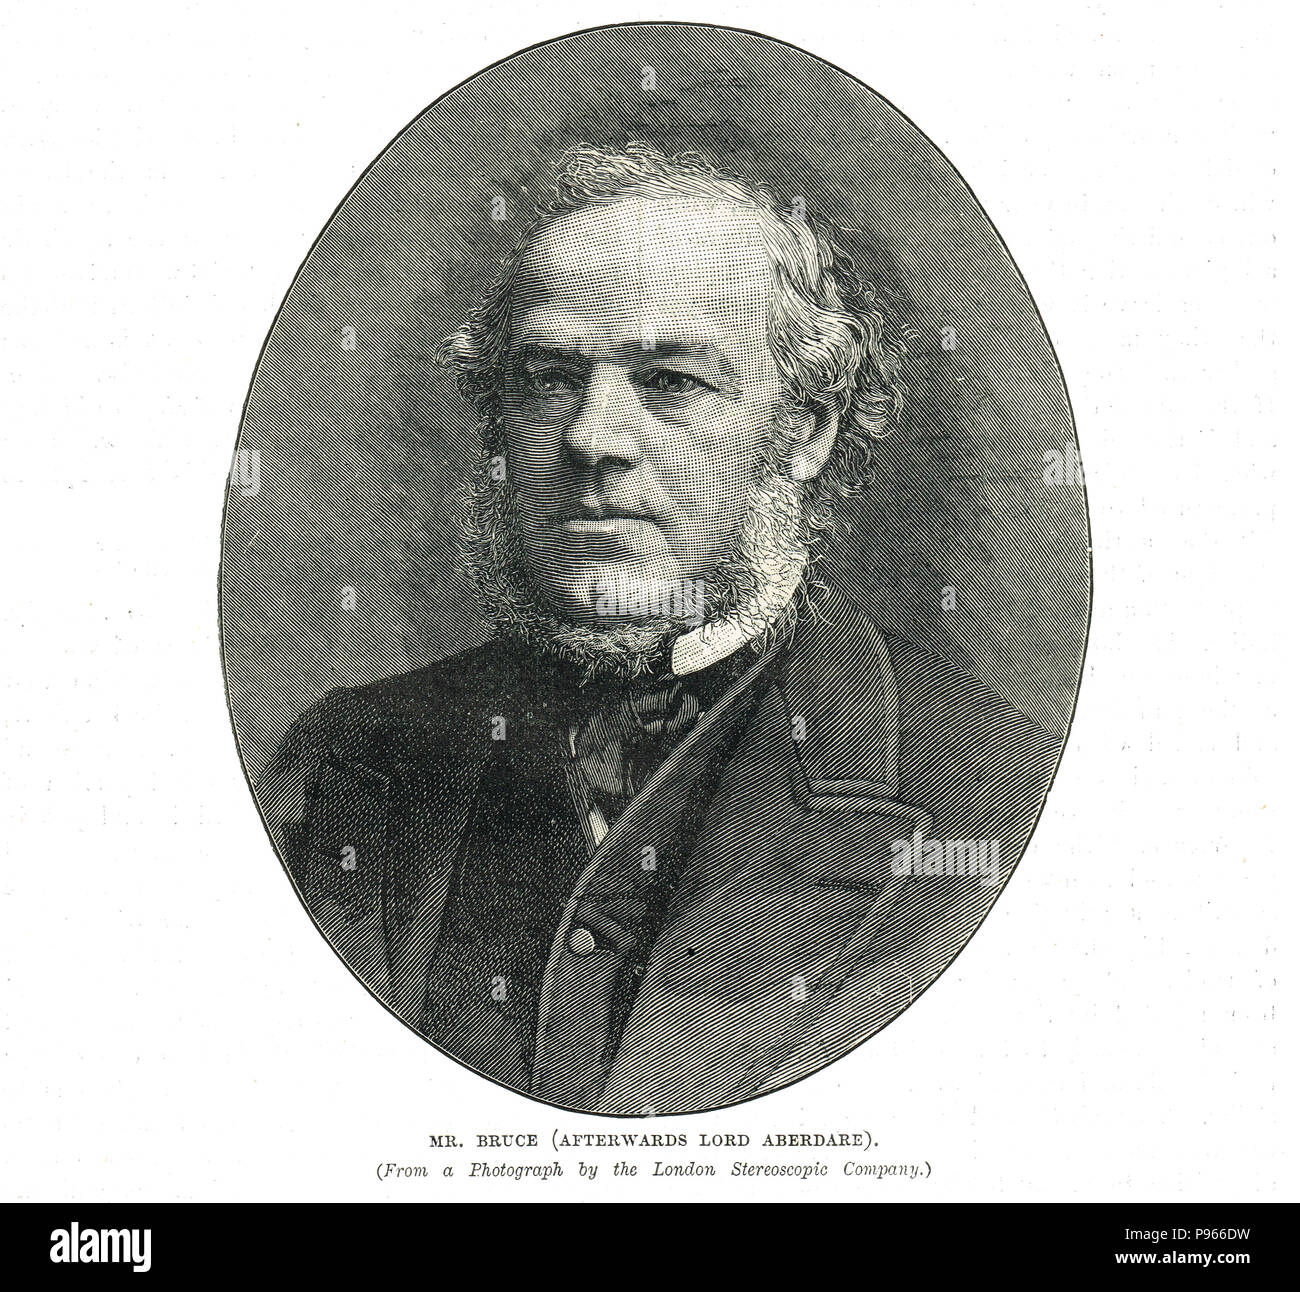 Henry Austin Bruce, 1st Baron Aberdare, British Liberal Party politician, Home Secretary, responsible for the Licensing Act 1872 which made magistrates the licensing authority, increased penalties for misconduct in public-houses, and shortened the number of hours for the sale of drink - Stock Image